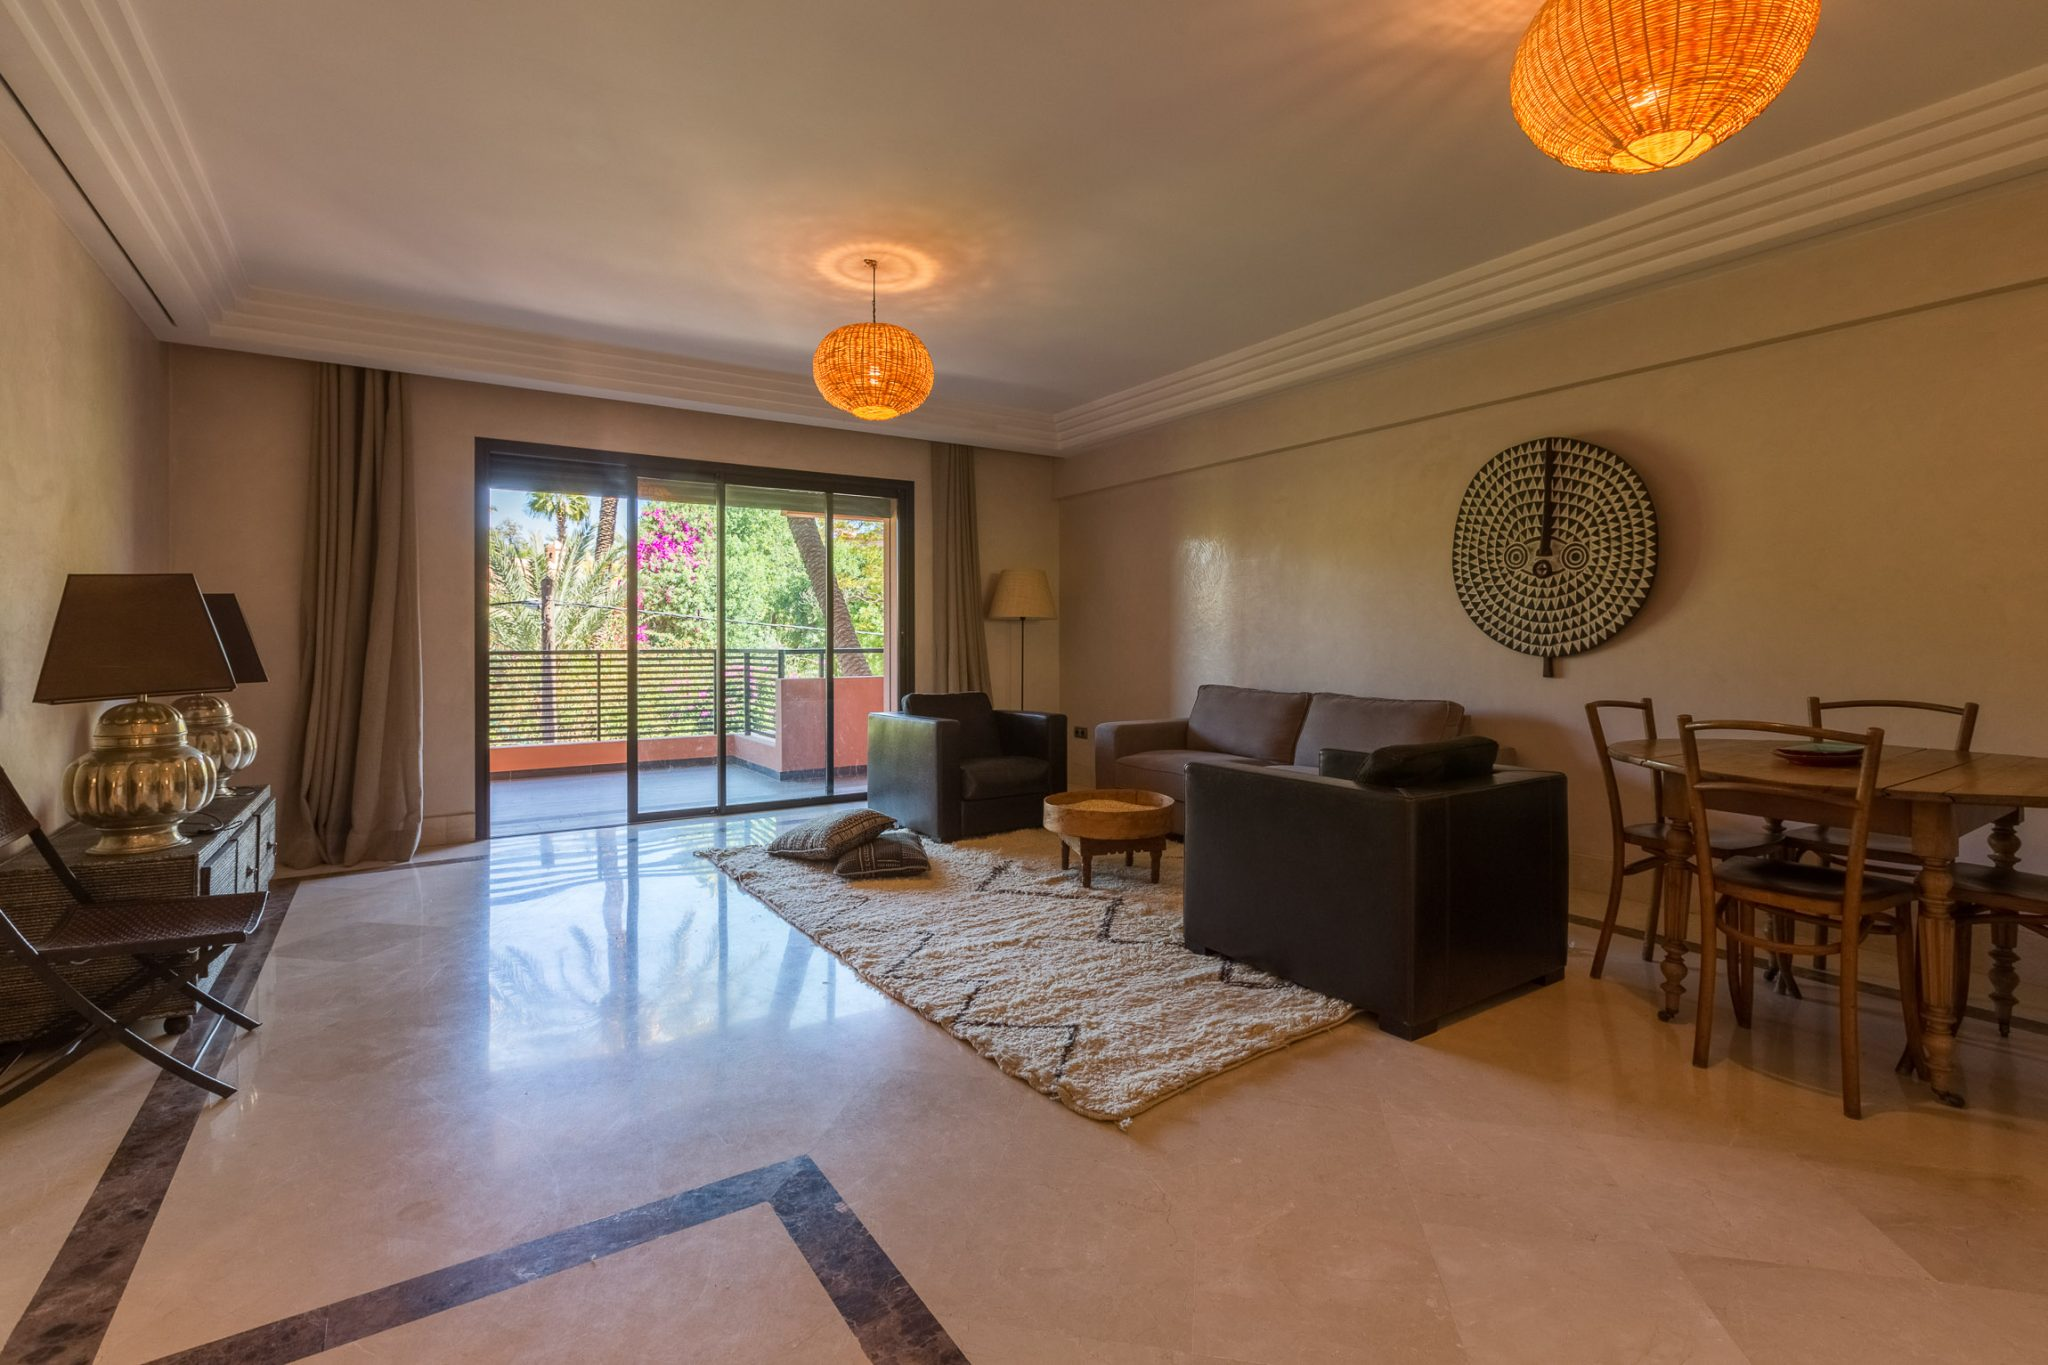 Location appartement marrakech joli appartement meubl for Appartement a louer meuble